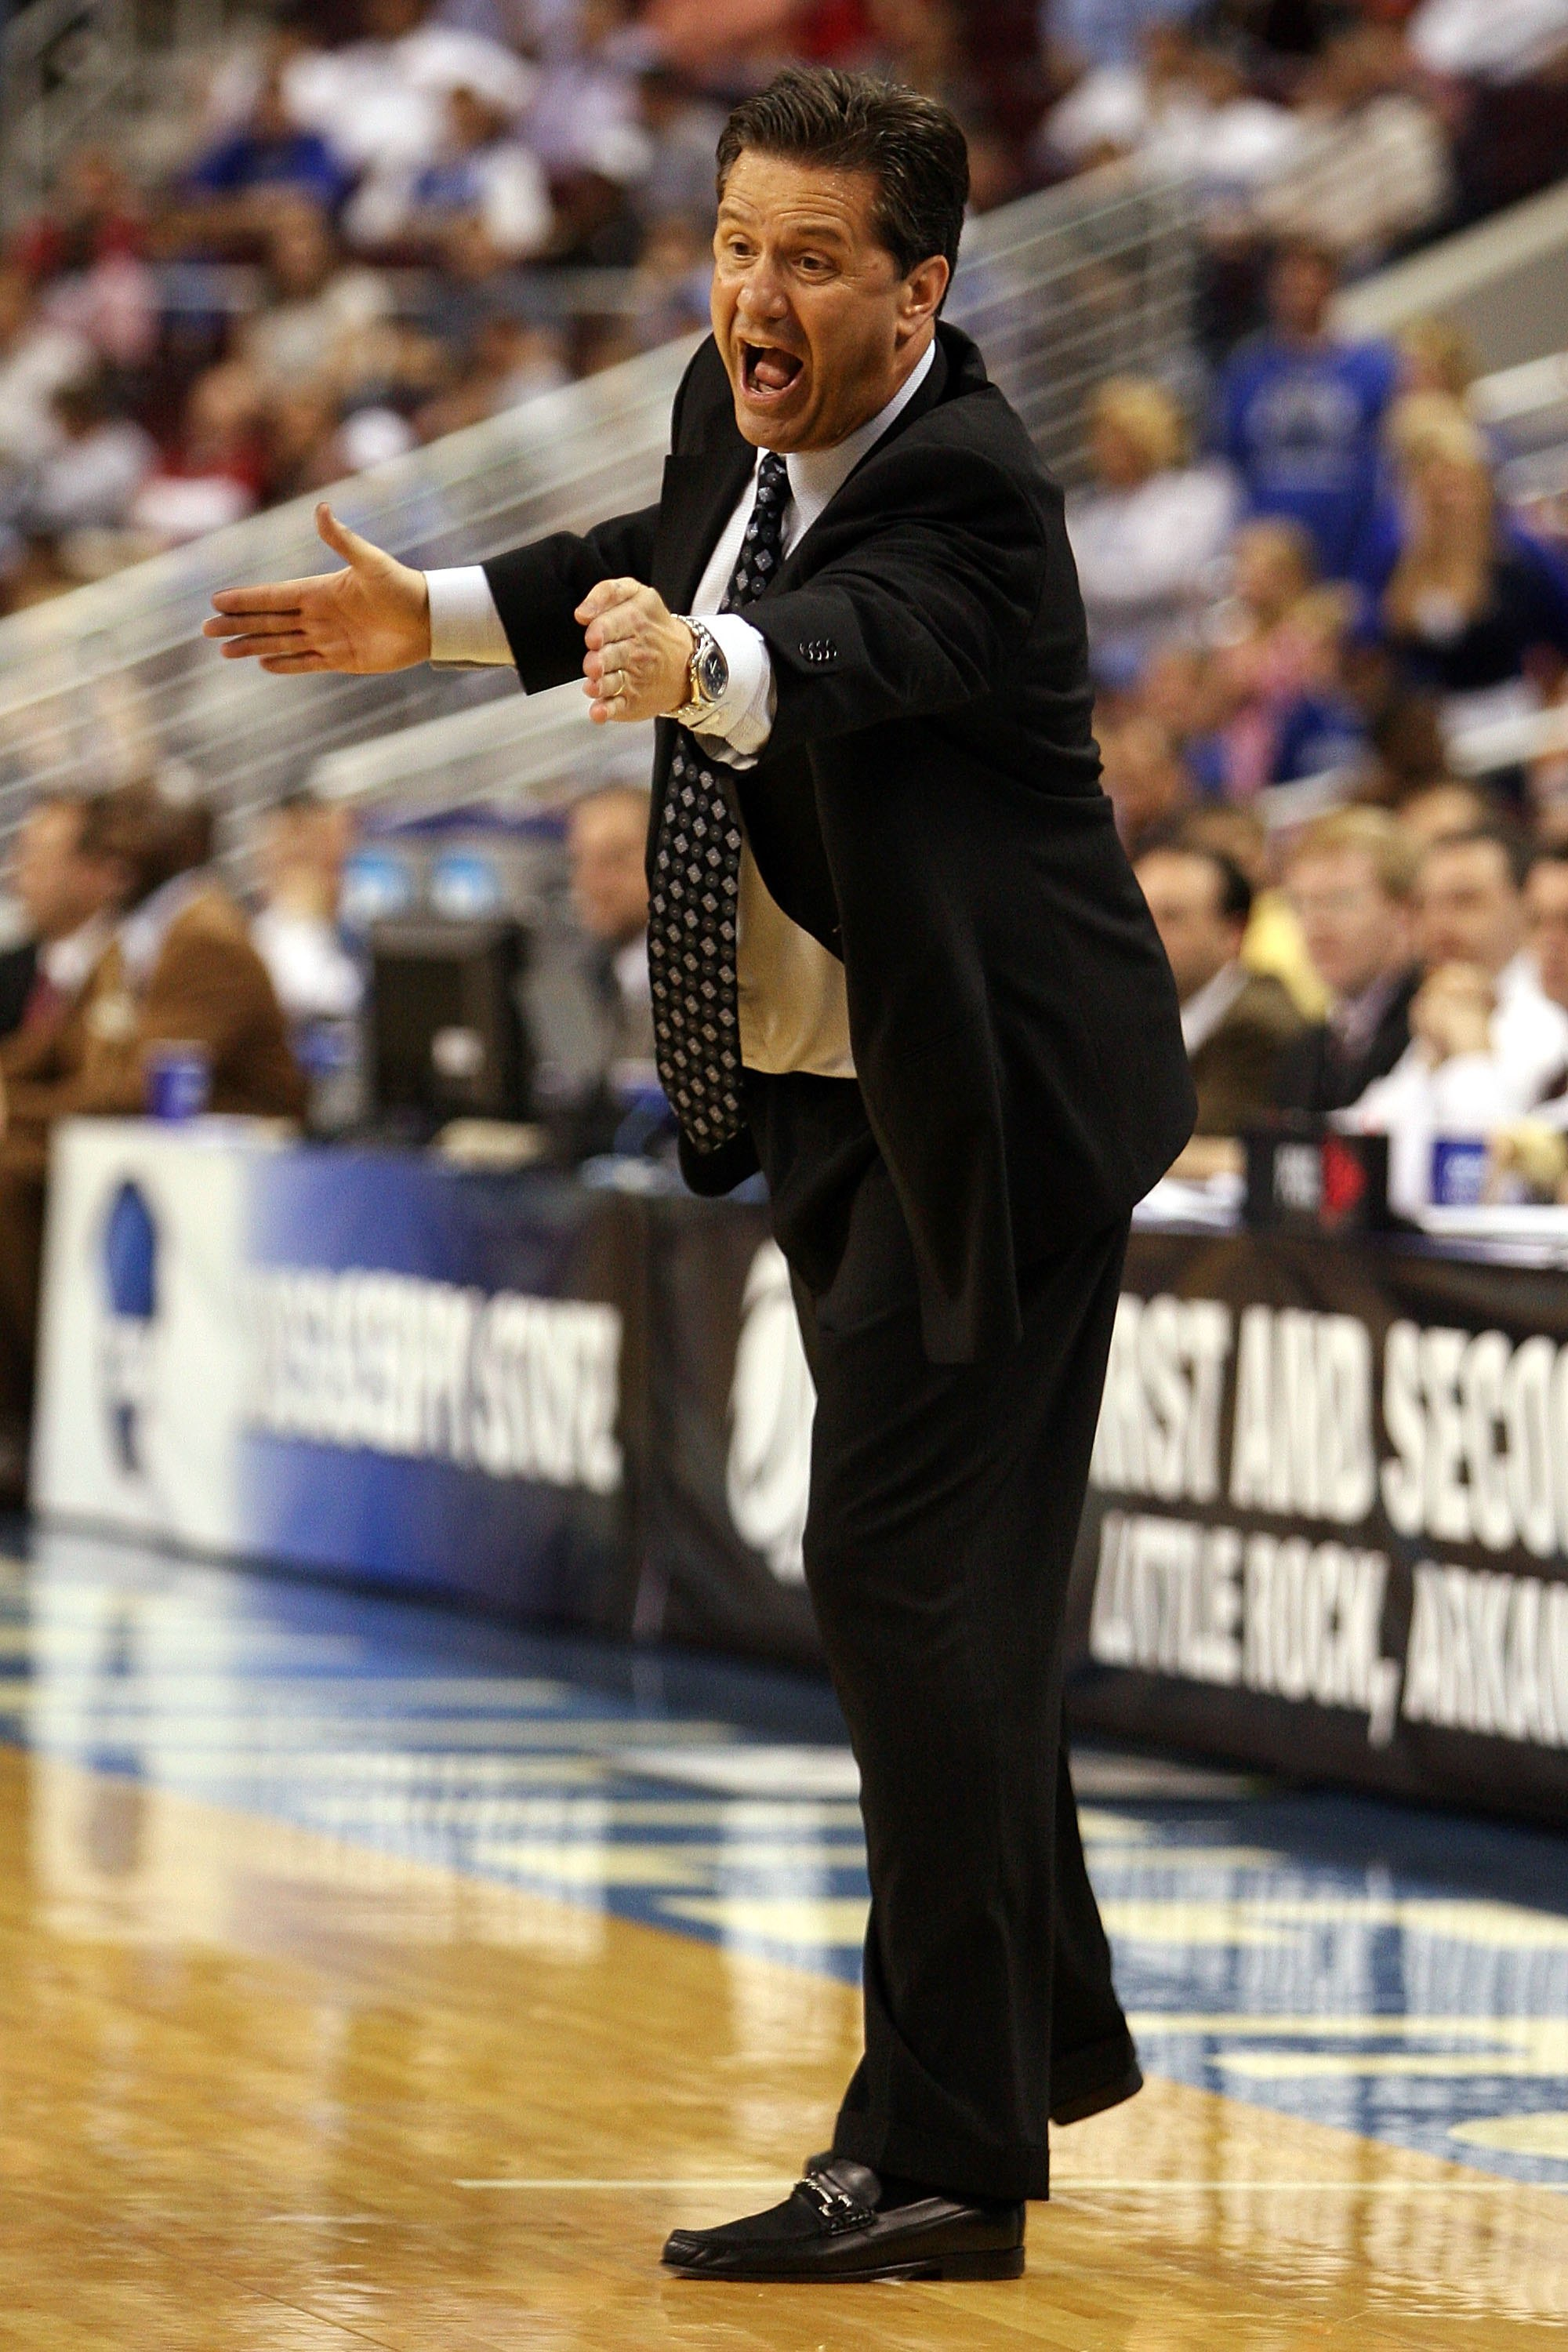 NORTH LITTLE ROCK, AR - MARCH 23:  Head coach John Calipari of the Memphis Tigers reacts against the Mississippi State Bulldogs during the second round of the South Regional as part of the 2008 NCAA Men's Basketball Tournament at Alltel Arena on March 23,